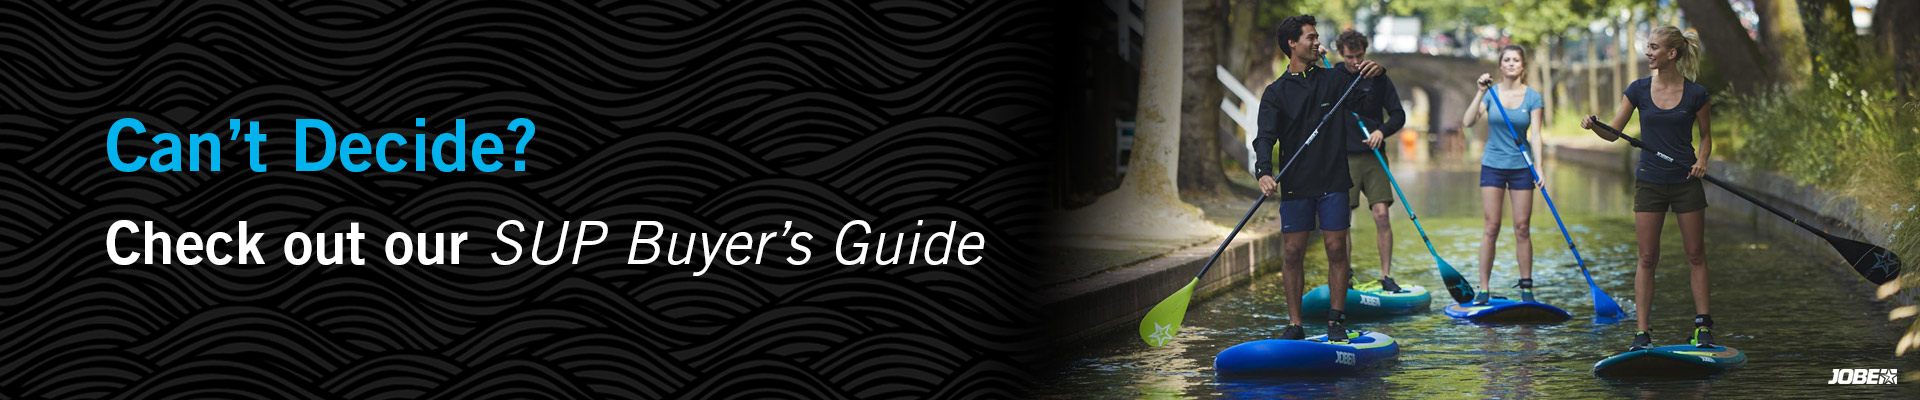 Can't Decide? Check out our SUP Buyer's Guide